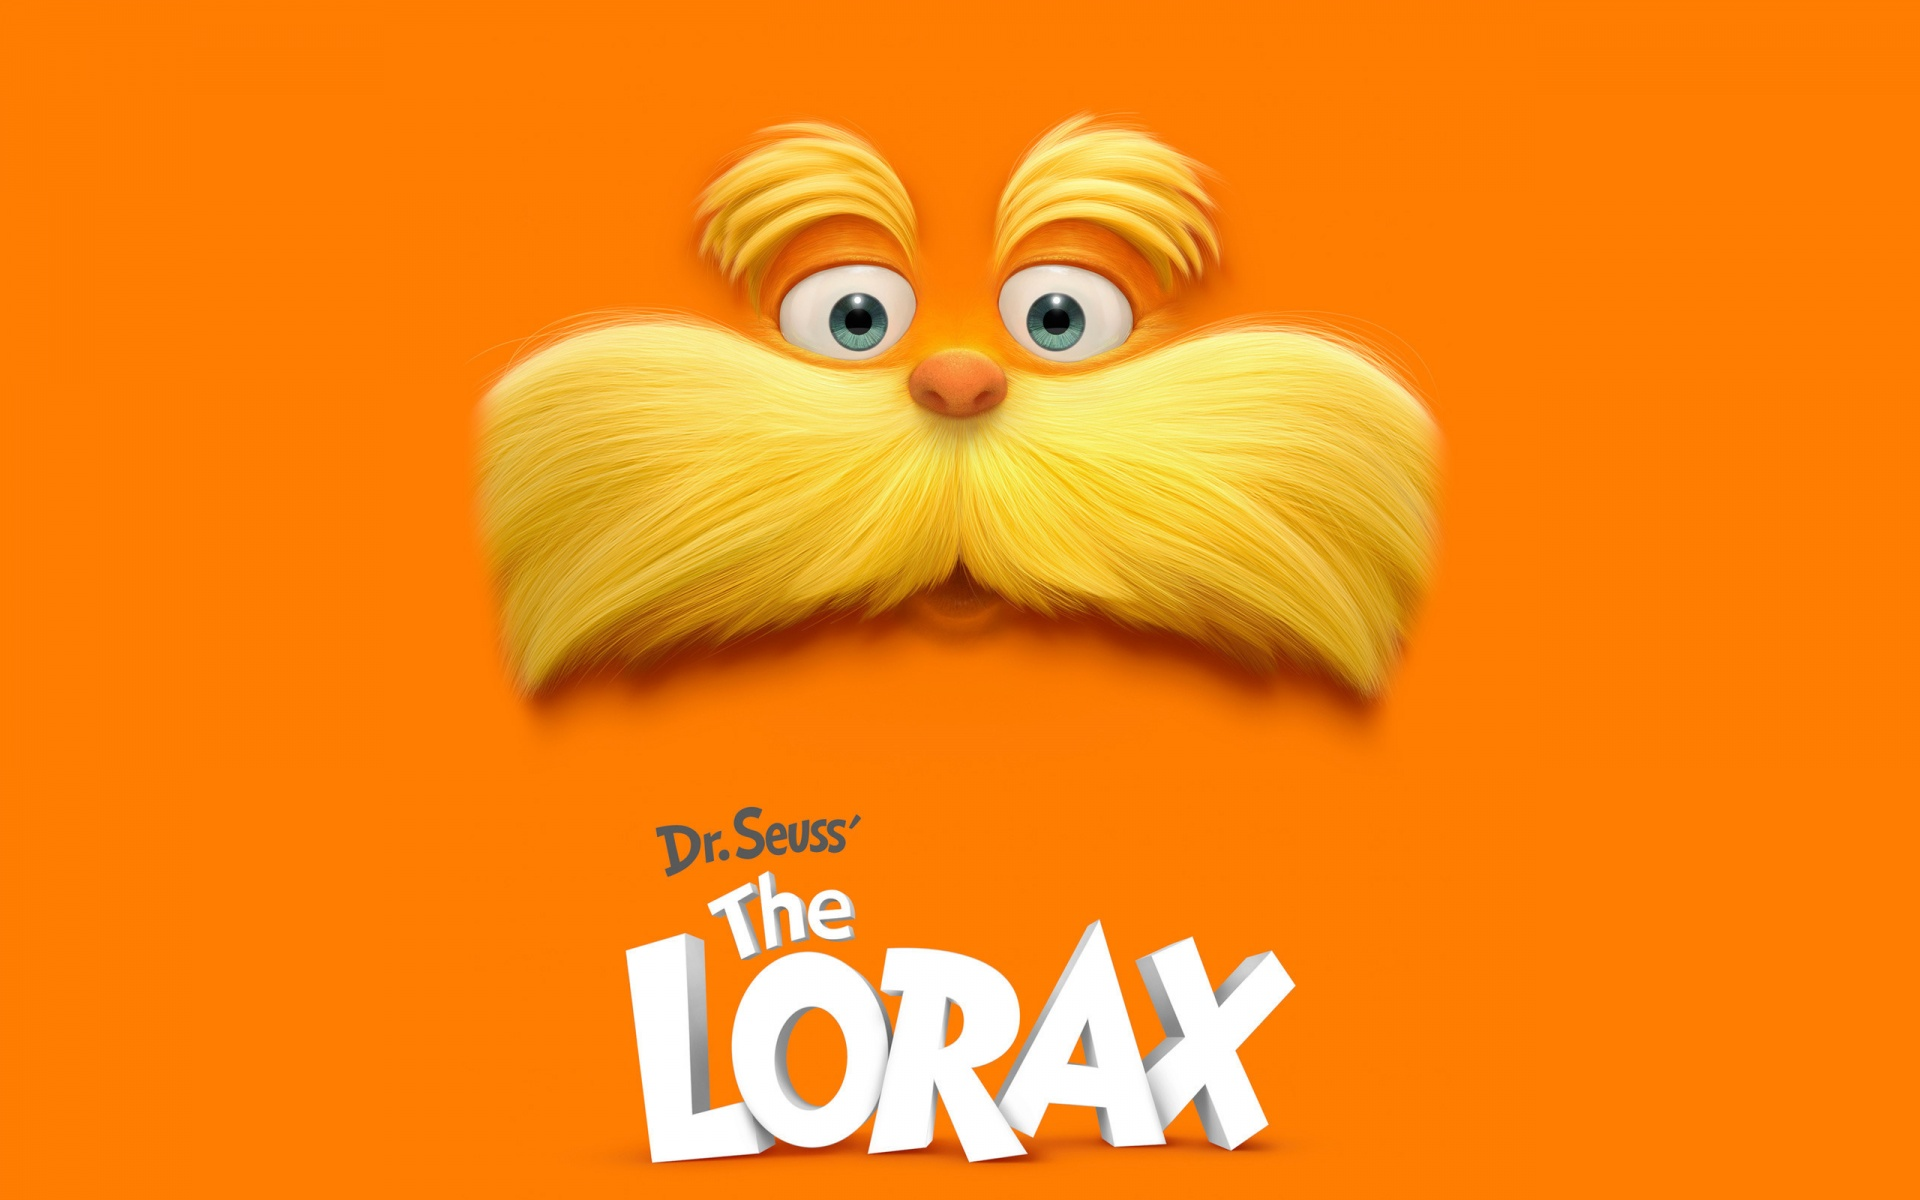 Dr Seuss The Lorax Wallpapers HD Wallpapers 1920x1200